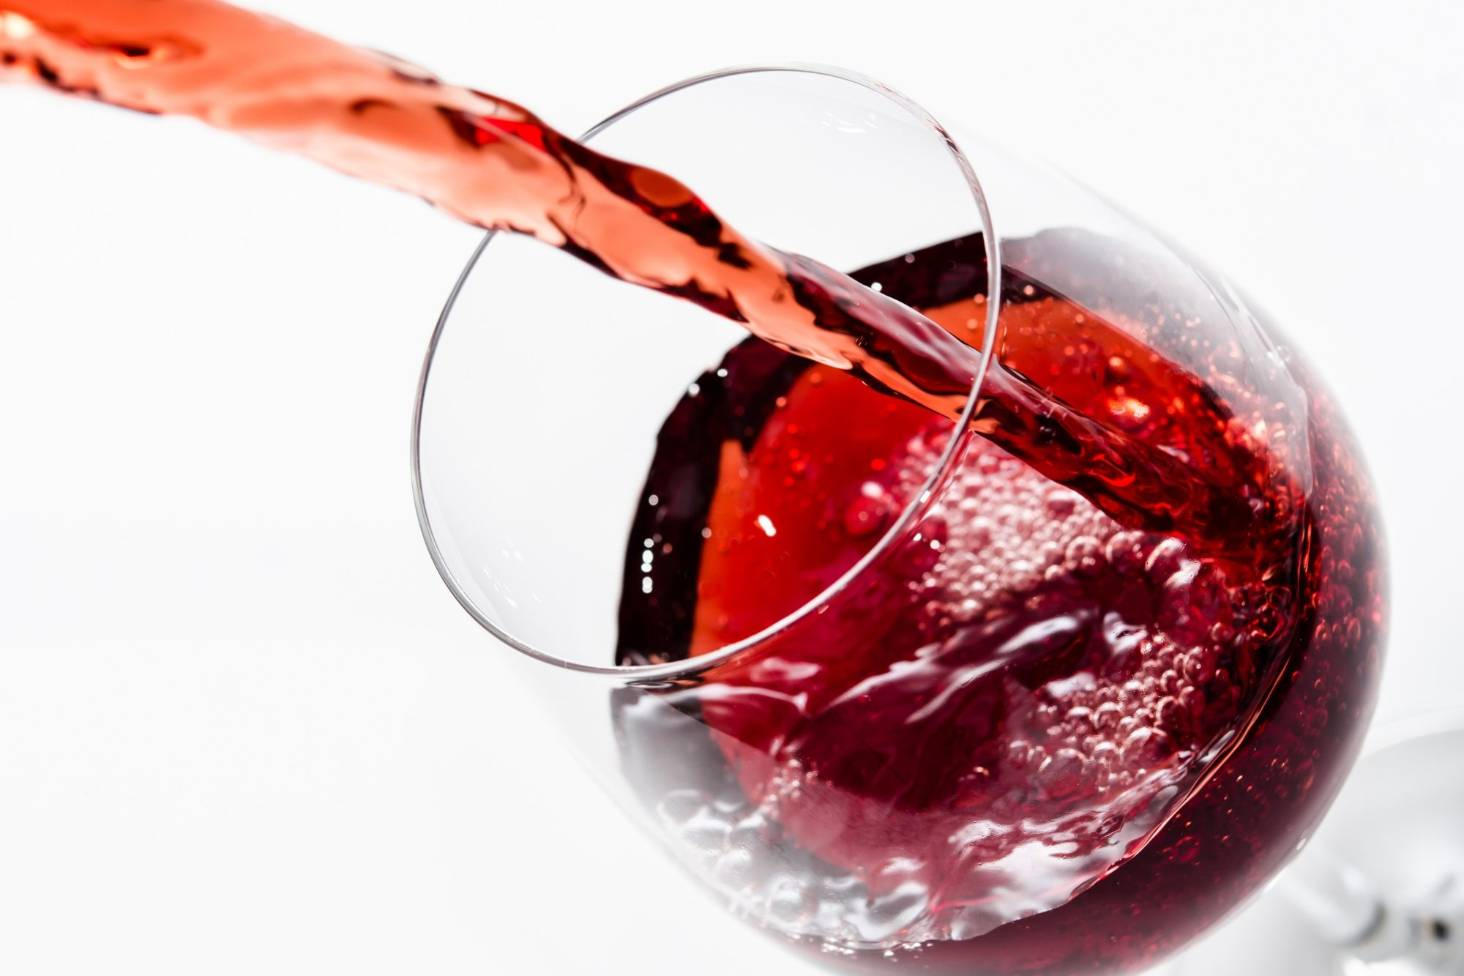 Red Wine A Fertility Boost For Some Study Claims Stuff Co Nz